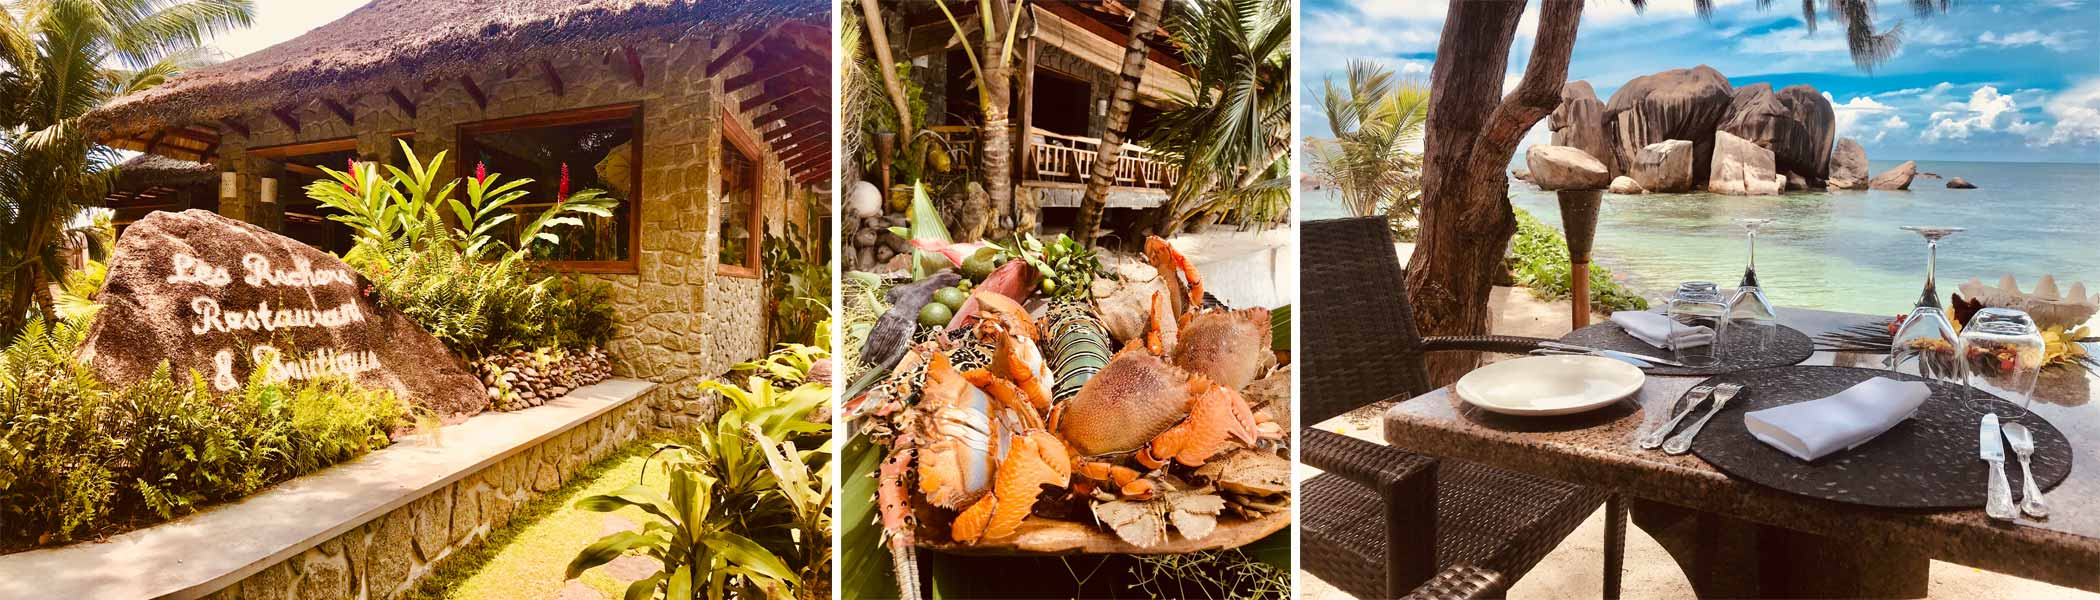 les-rochers, Bars and restaurants in Seychelles Islands